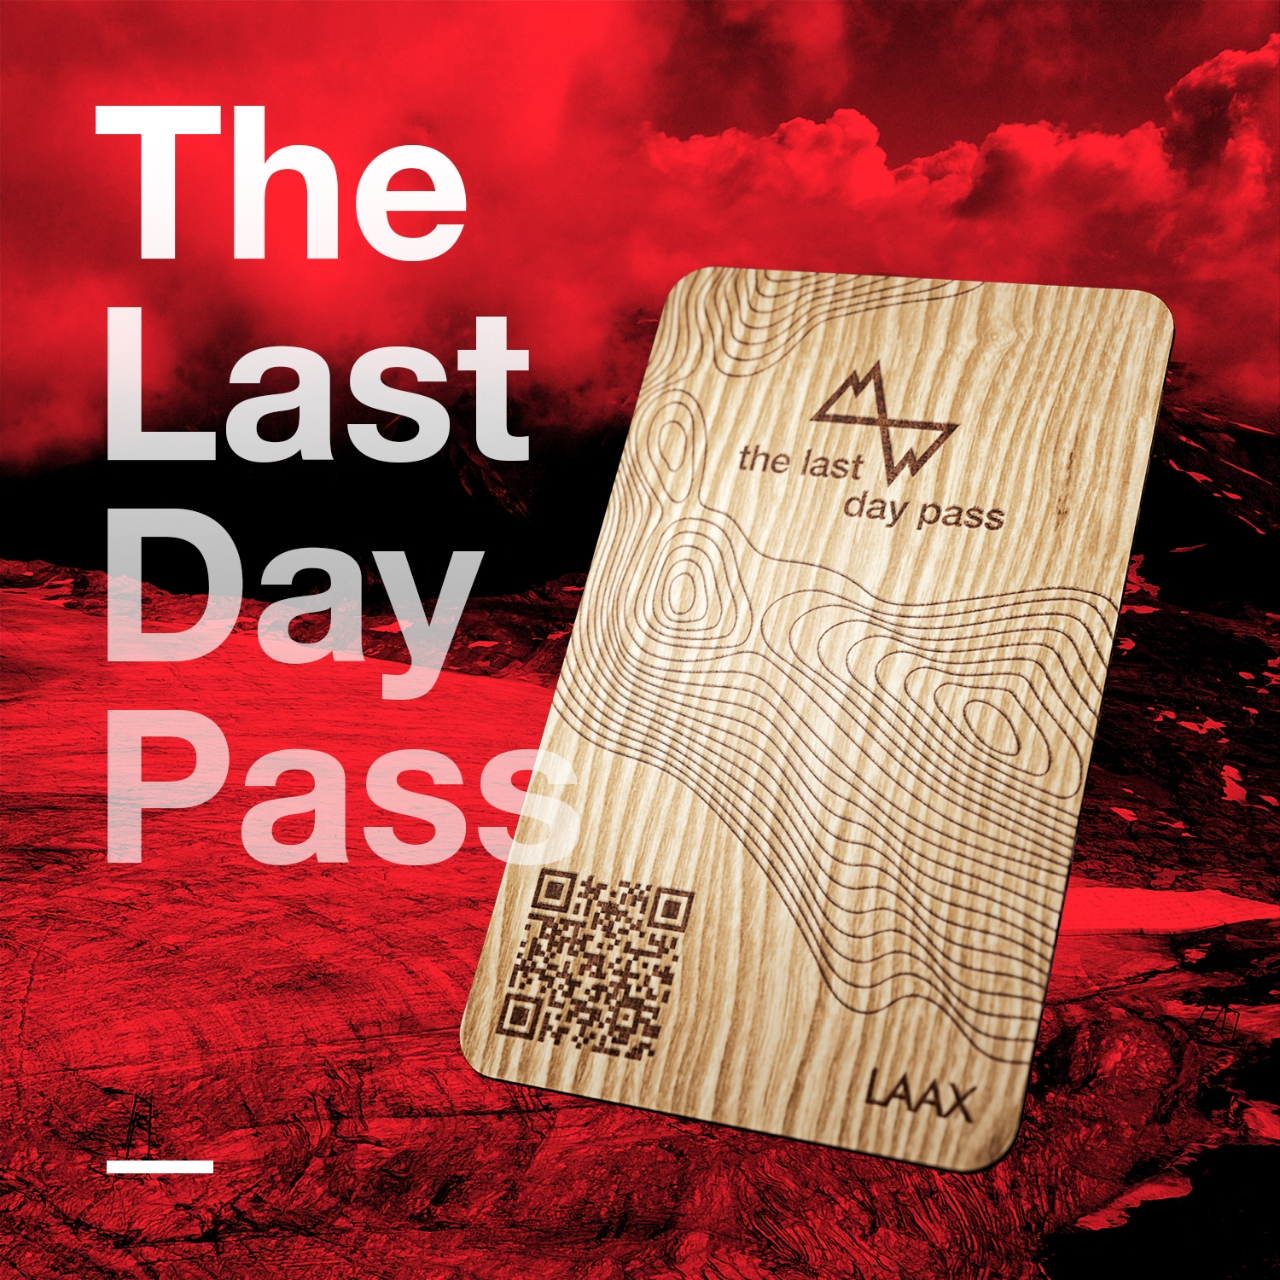 The Last Day Pass